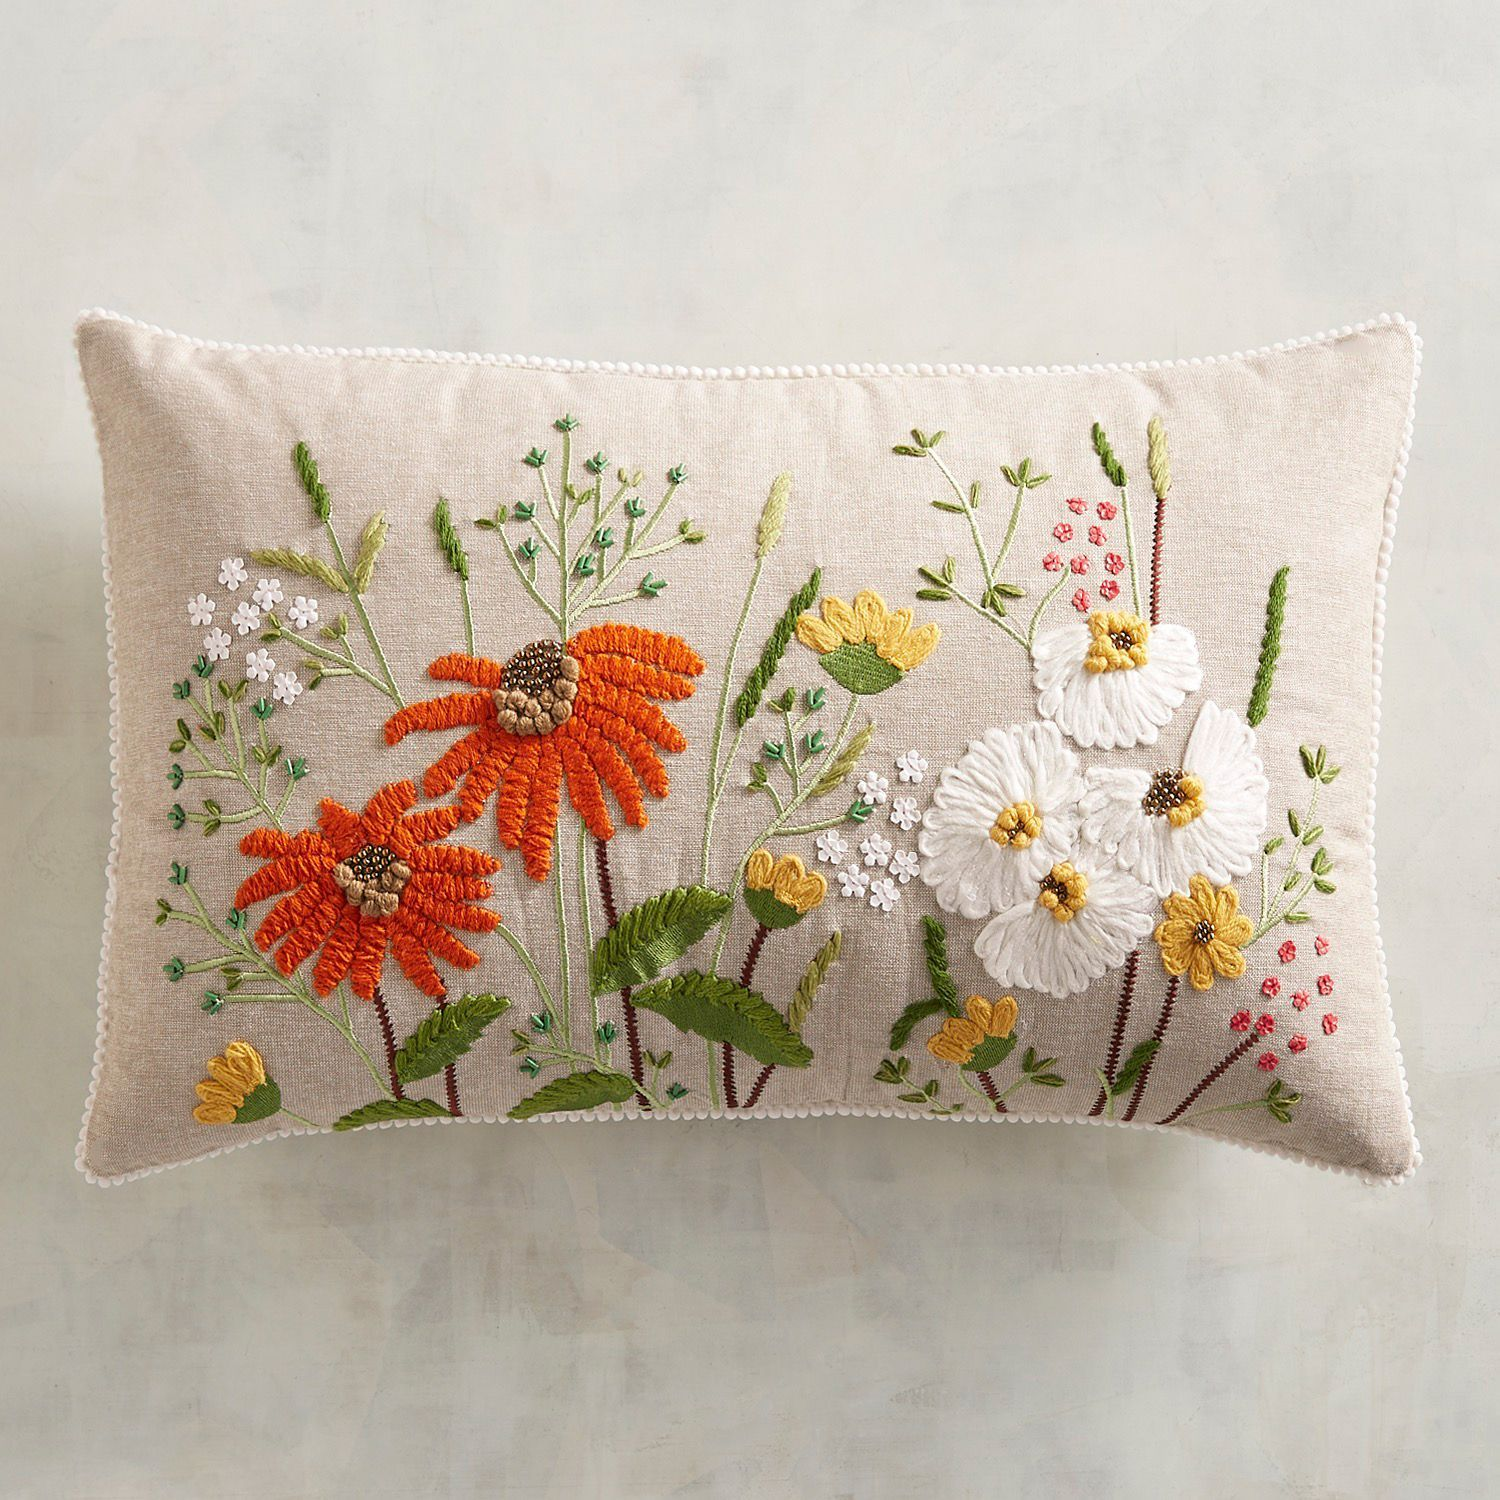 Embroidered throw pillow with a